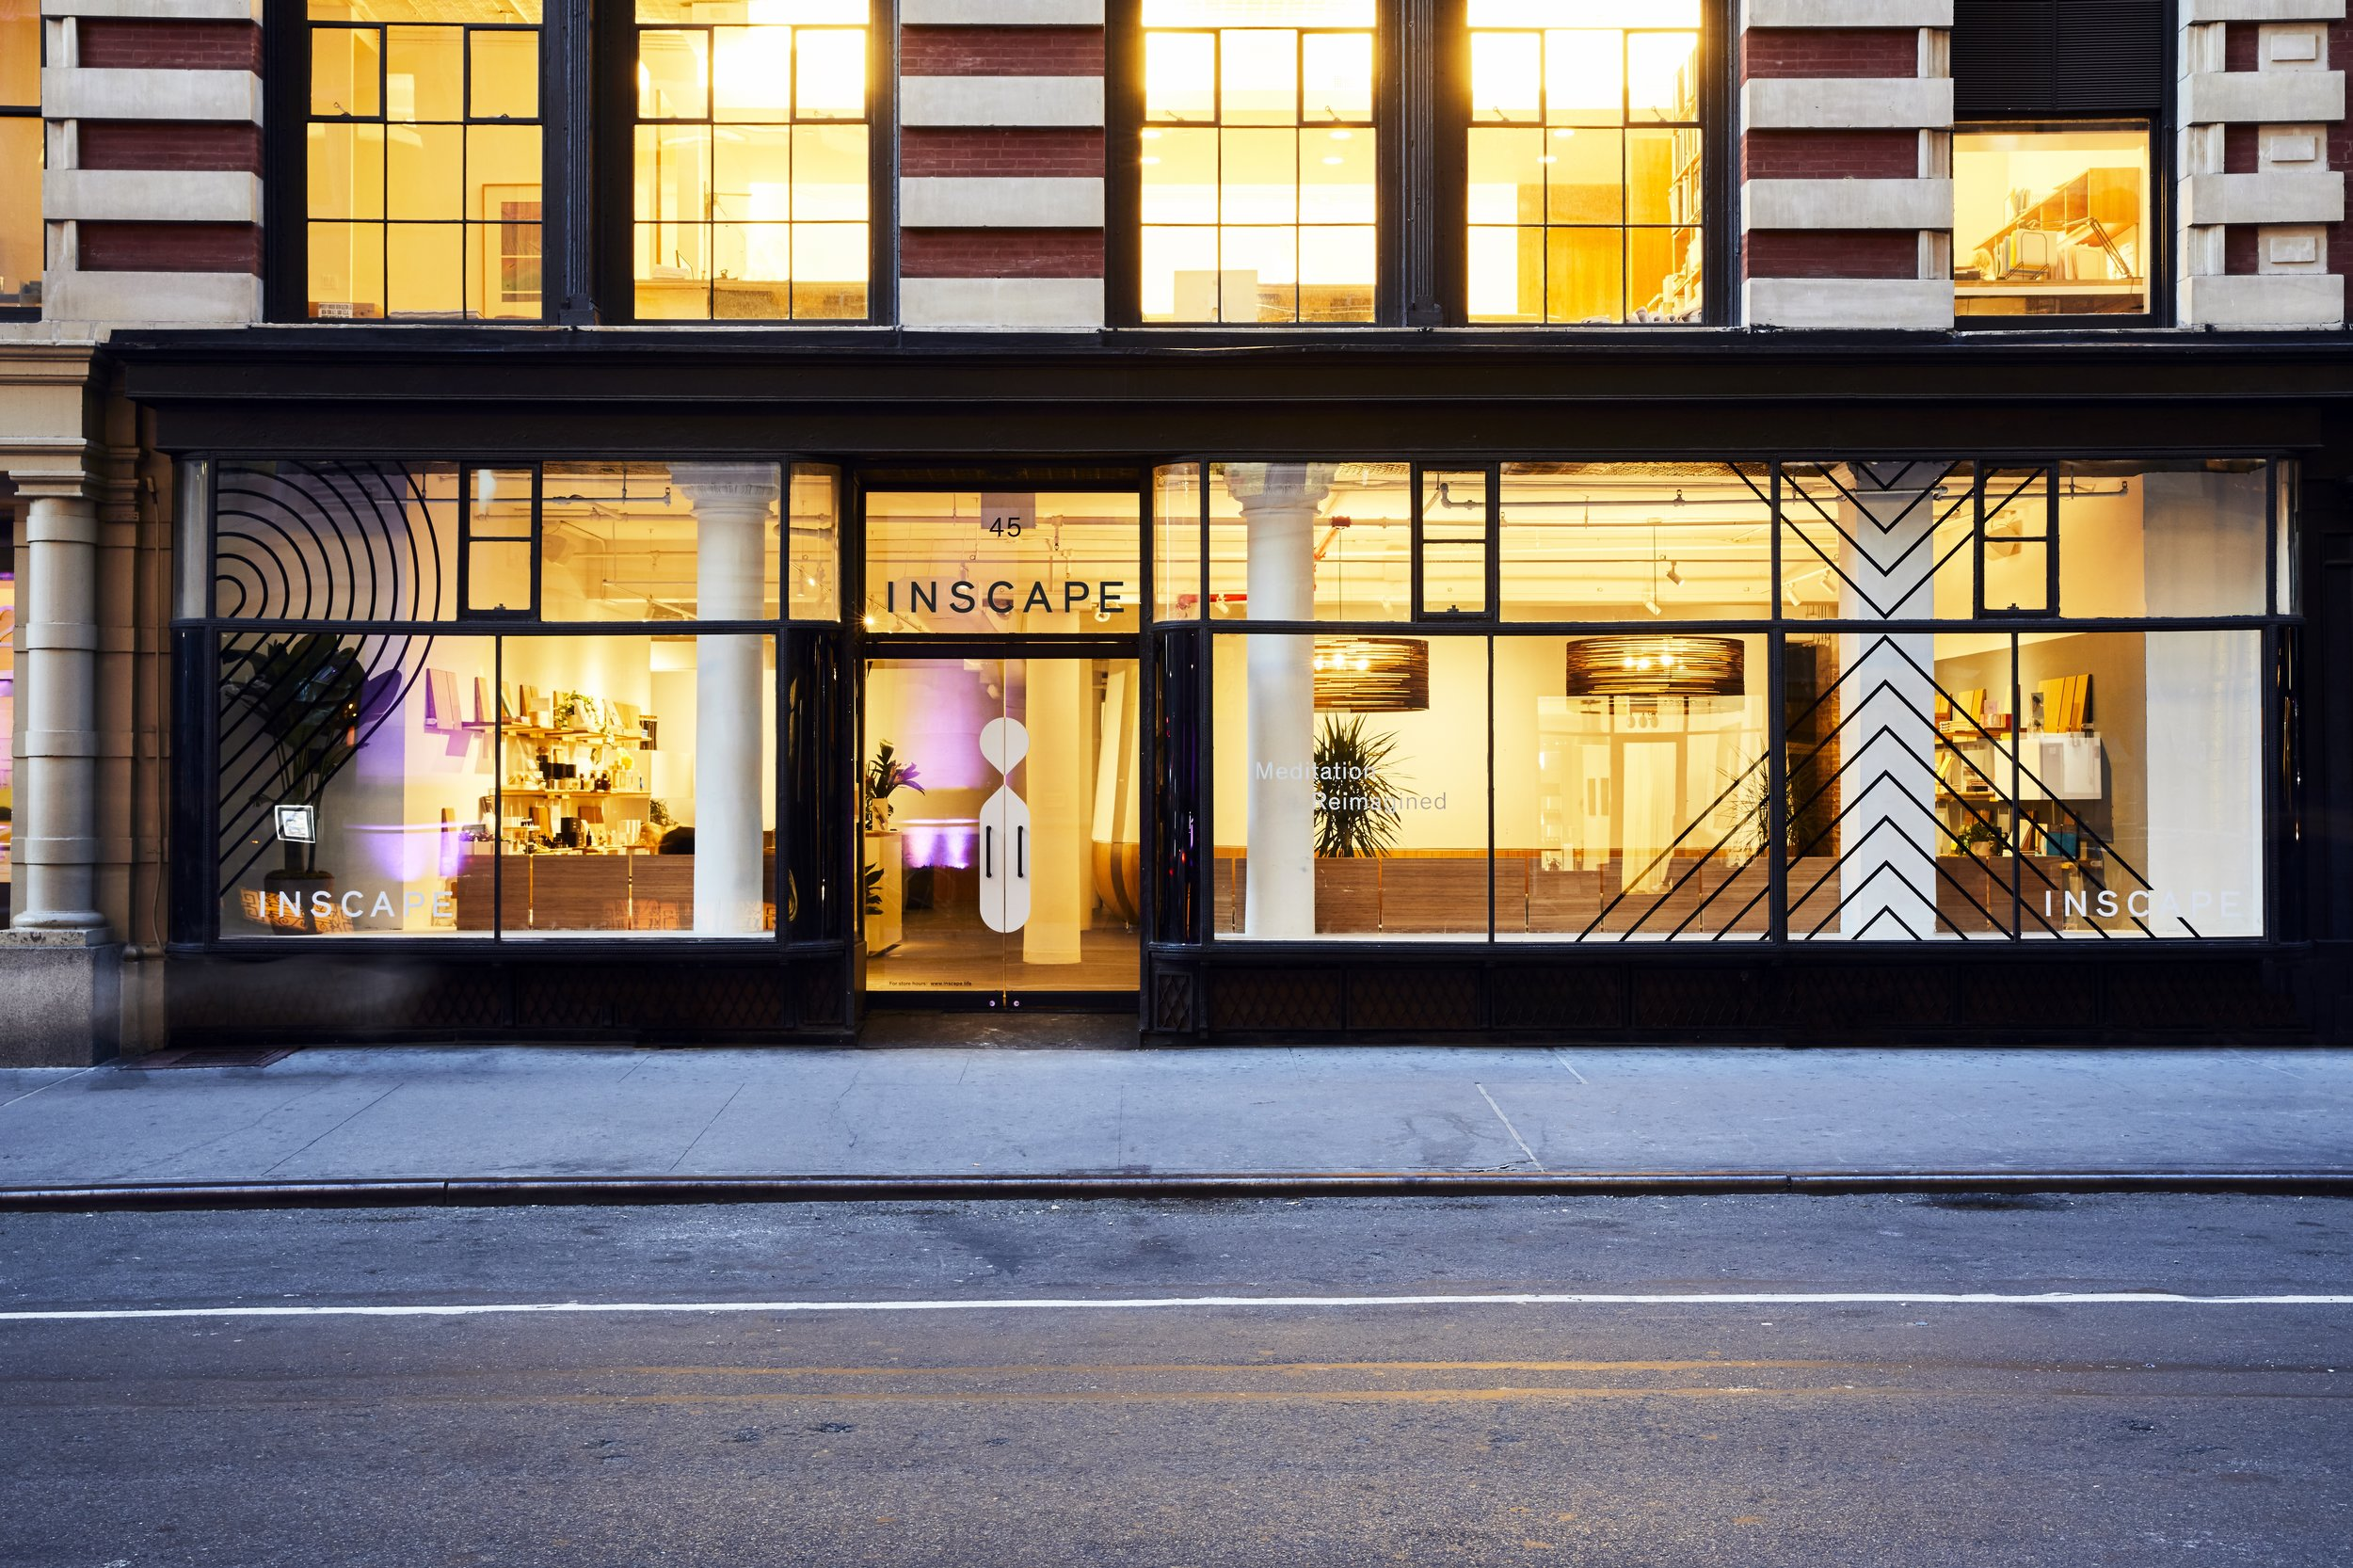 The Inscape storefront in the Flatiron district of New York City